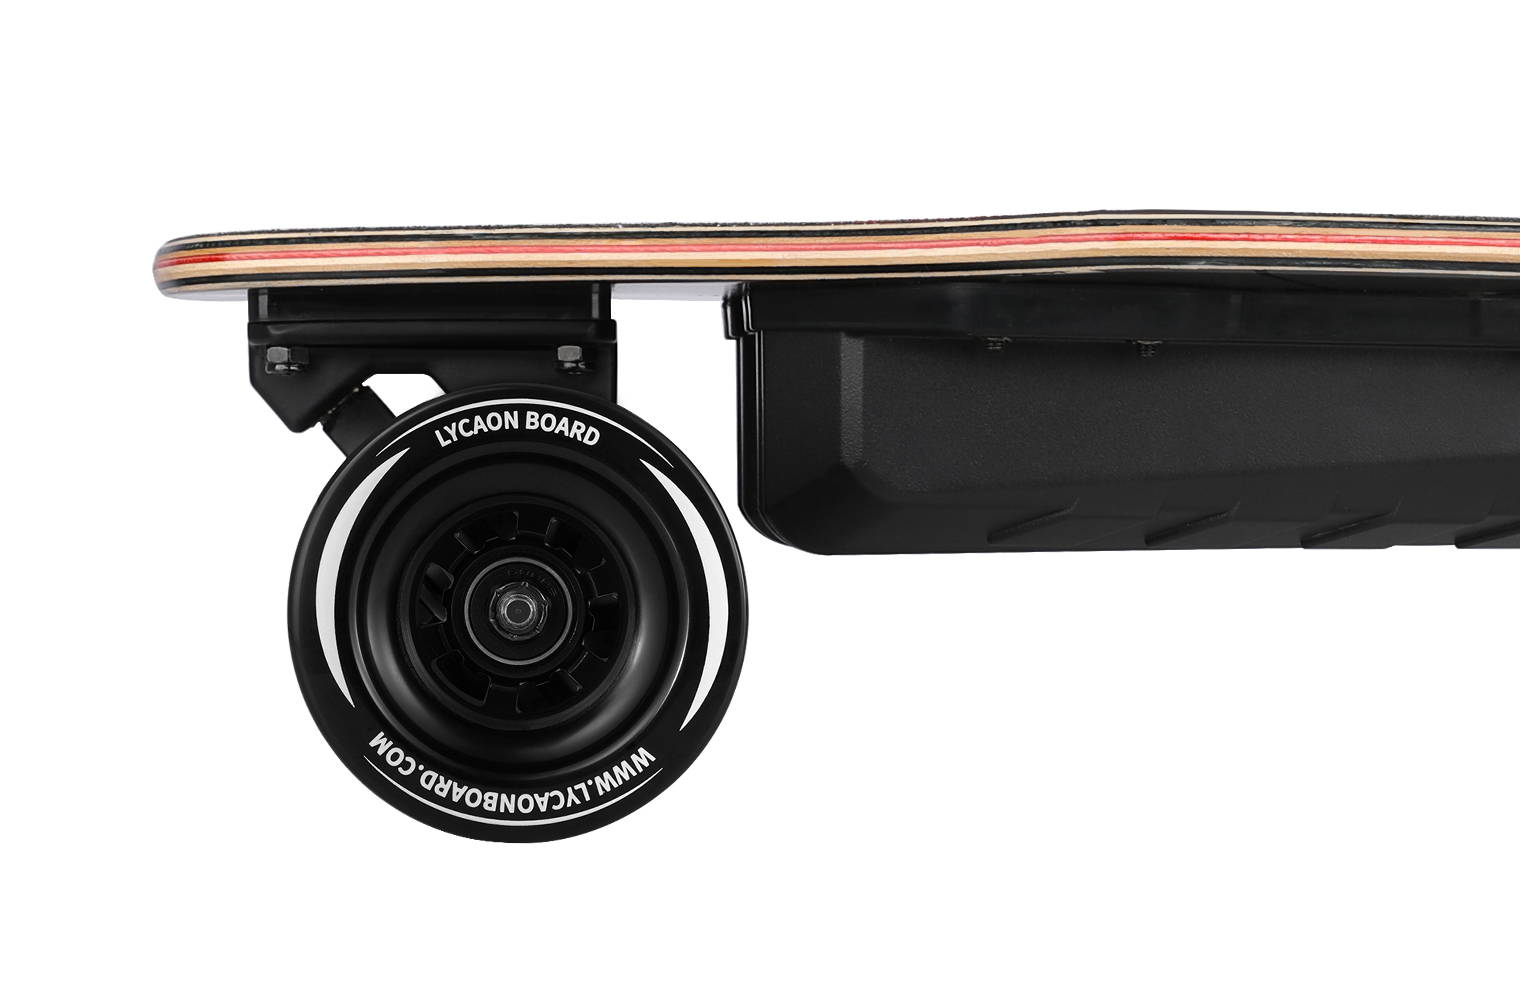 5 driven wheel of Lycaon Electric Skateboard